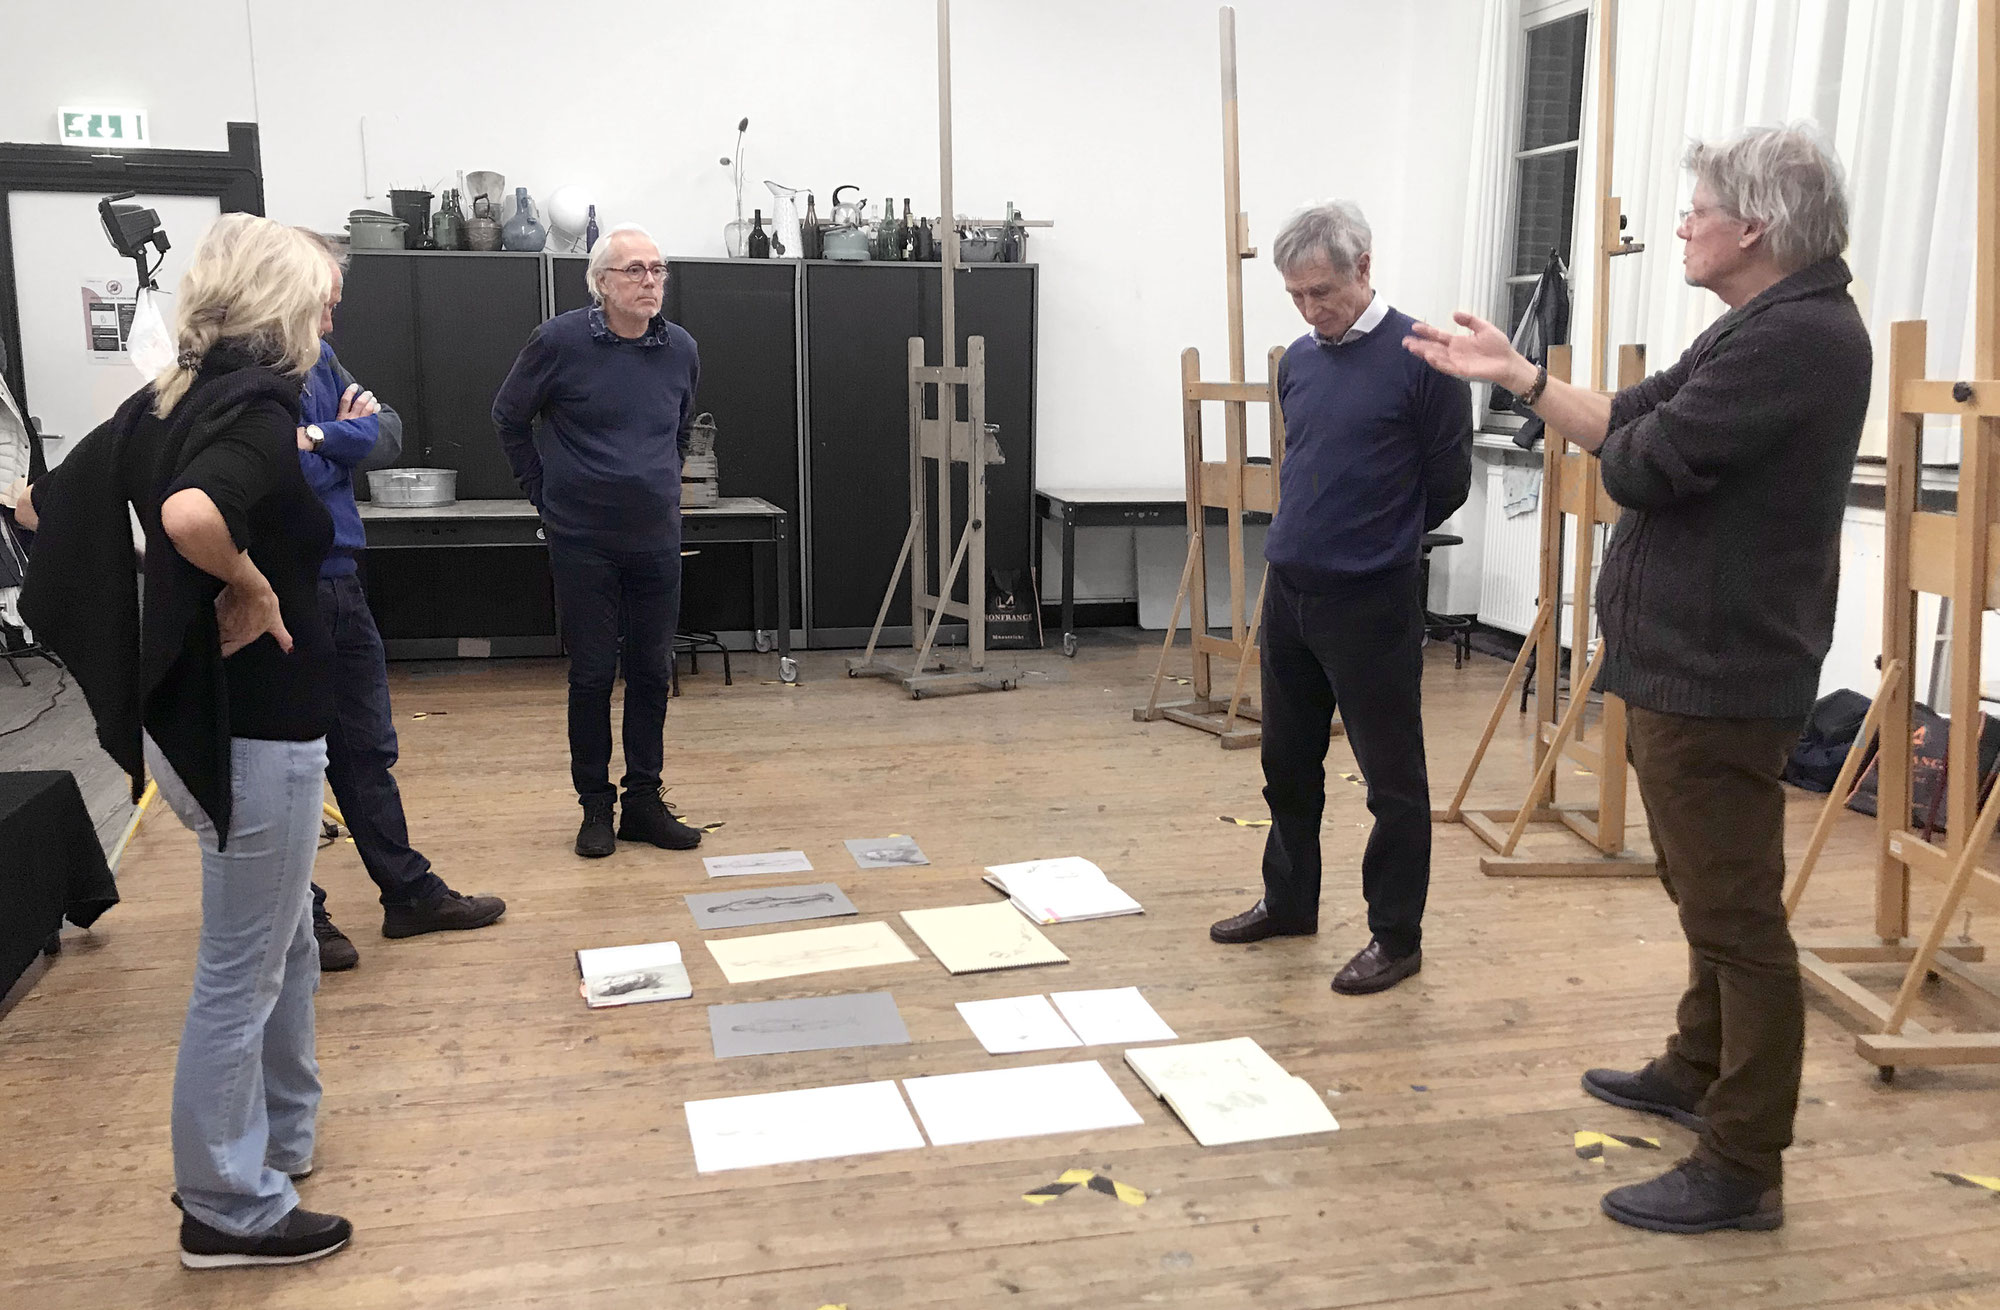 Modeldrawing, lessons from the masters (part two)